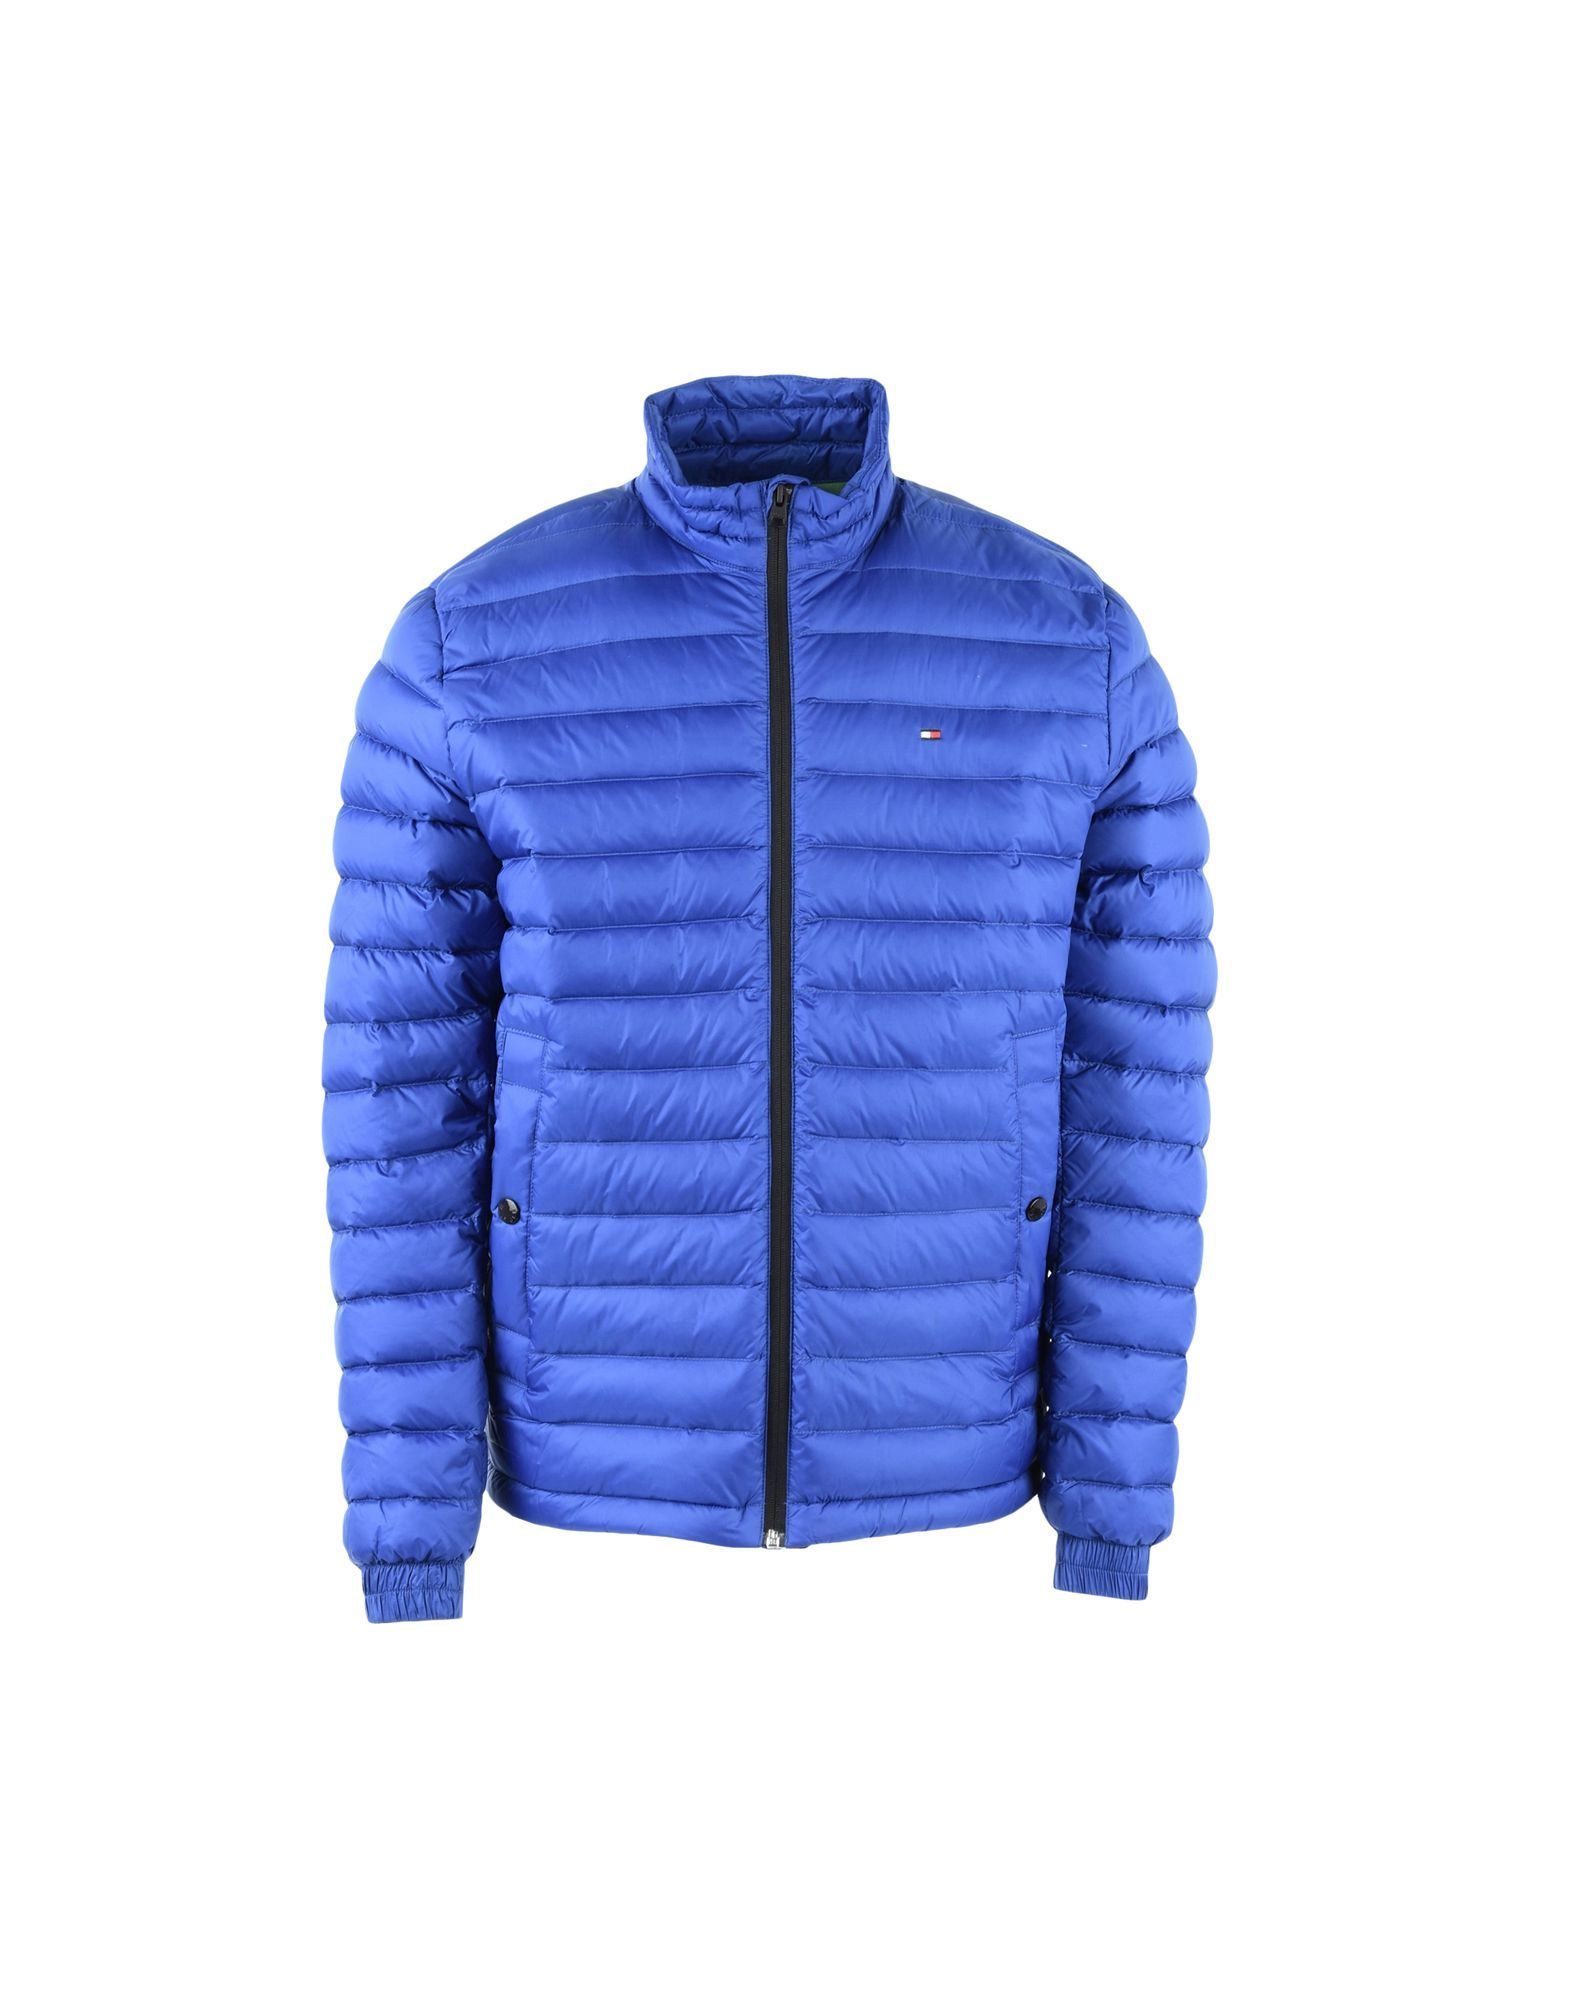 Tommy Hilfiger Outlet Ladies Down Jackets Functional Jackets Men S Coats And Jackets [ 2000 x 1571 Pixel ]